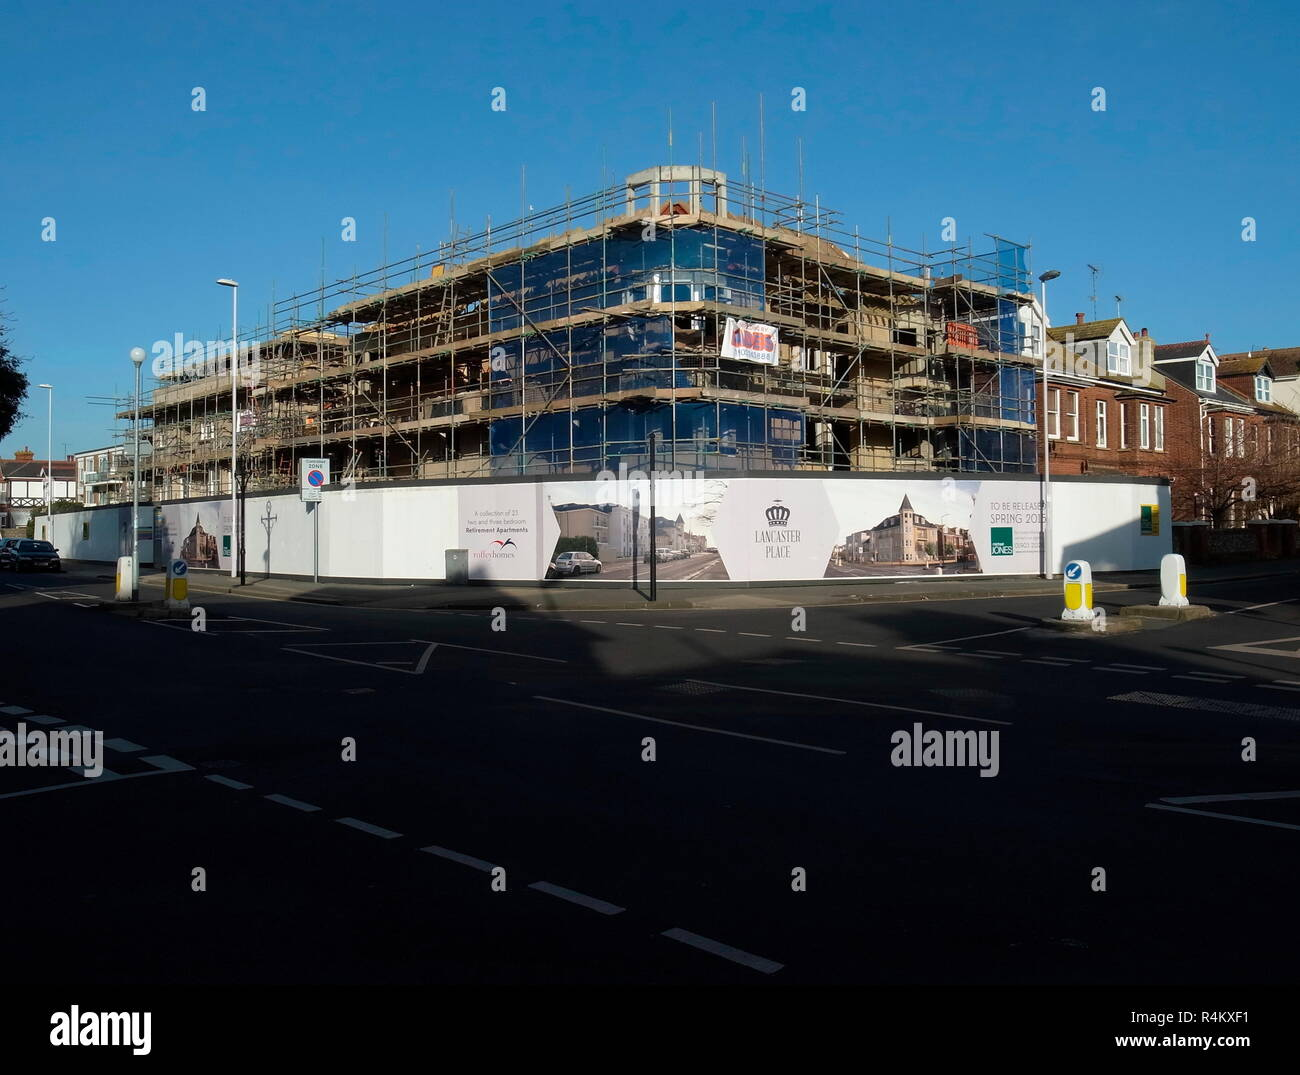 AJAXNETPHOTO. 2015. WORTHING, ENGLAND. - LANCASTER PLACE - NEW RETIREMENT HOMES PROPERTY DEVELOPMENT UNDER CONSTRUCTION ON SITE OF THE OLD BANK ON CORNER OF ROWLANDS AND HEENE ROAD.  PHOTO:JONATHAN EASTLAND/AJAX REF:GR150802_4598 - Stock Image